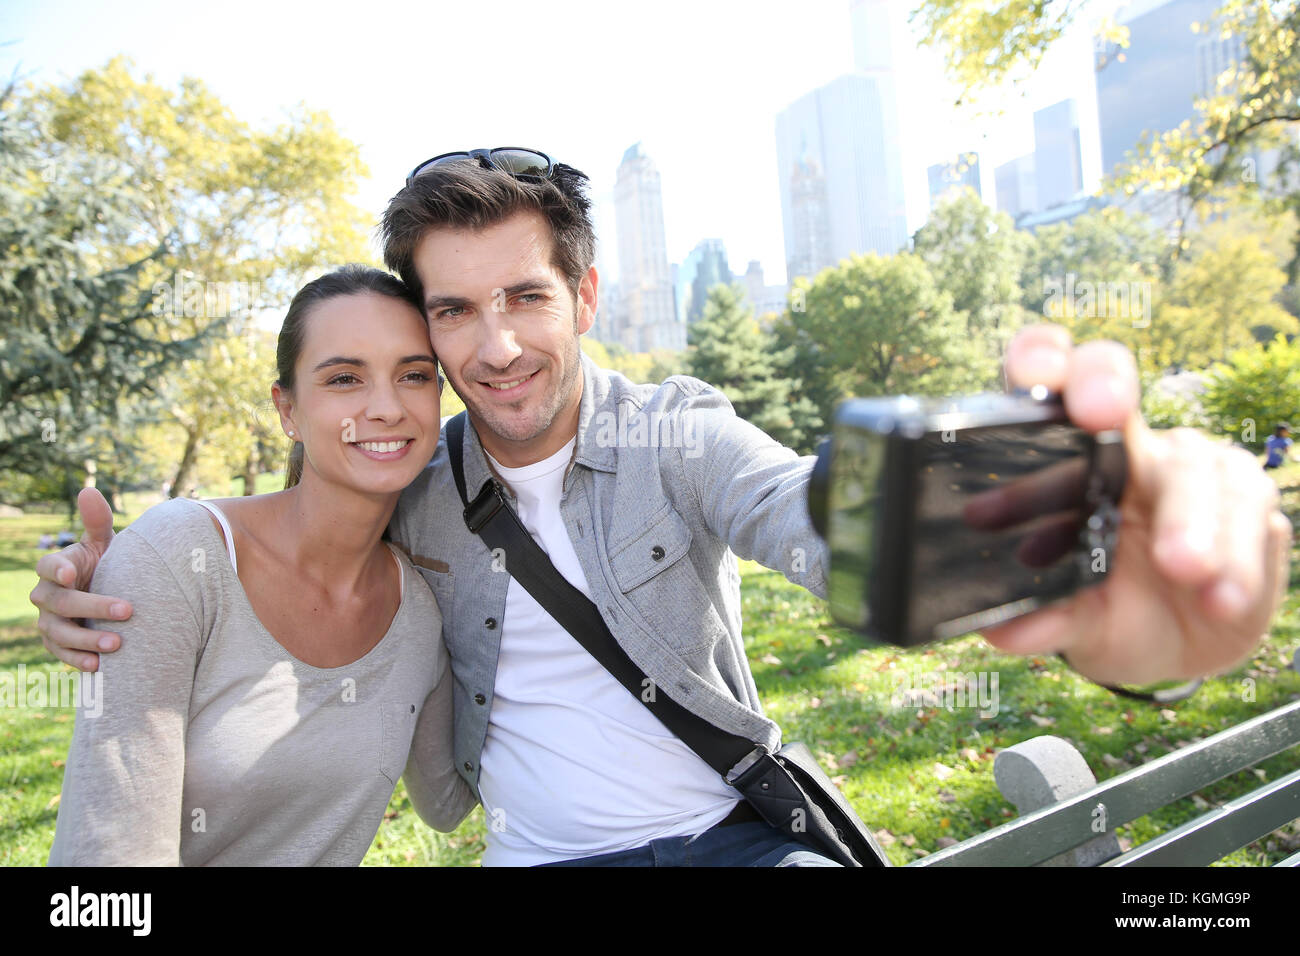 Couple in Central Park taking picture of themselves Stock Photo